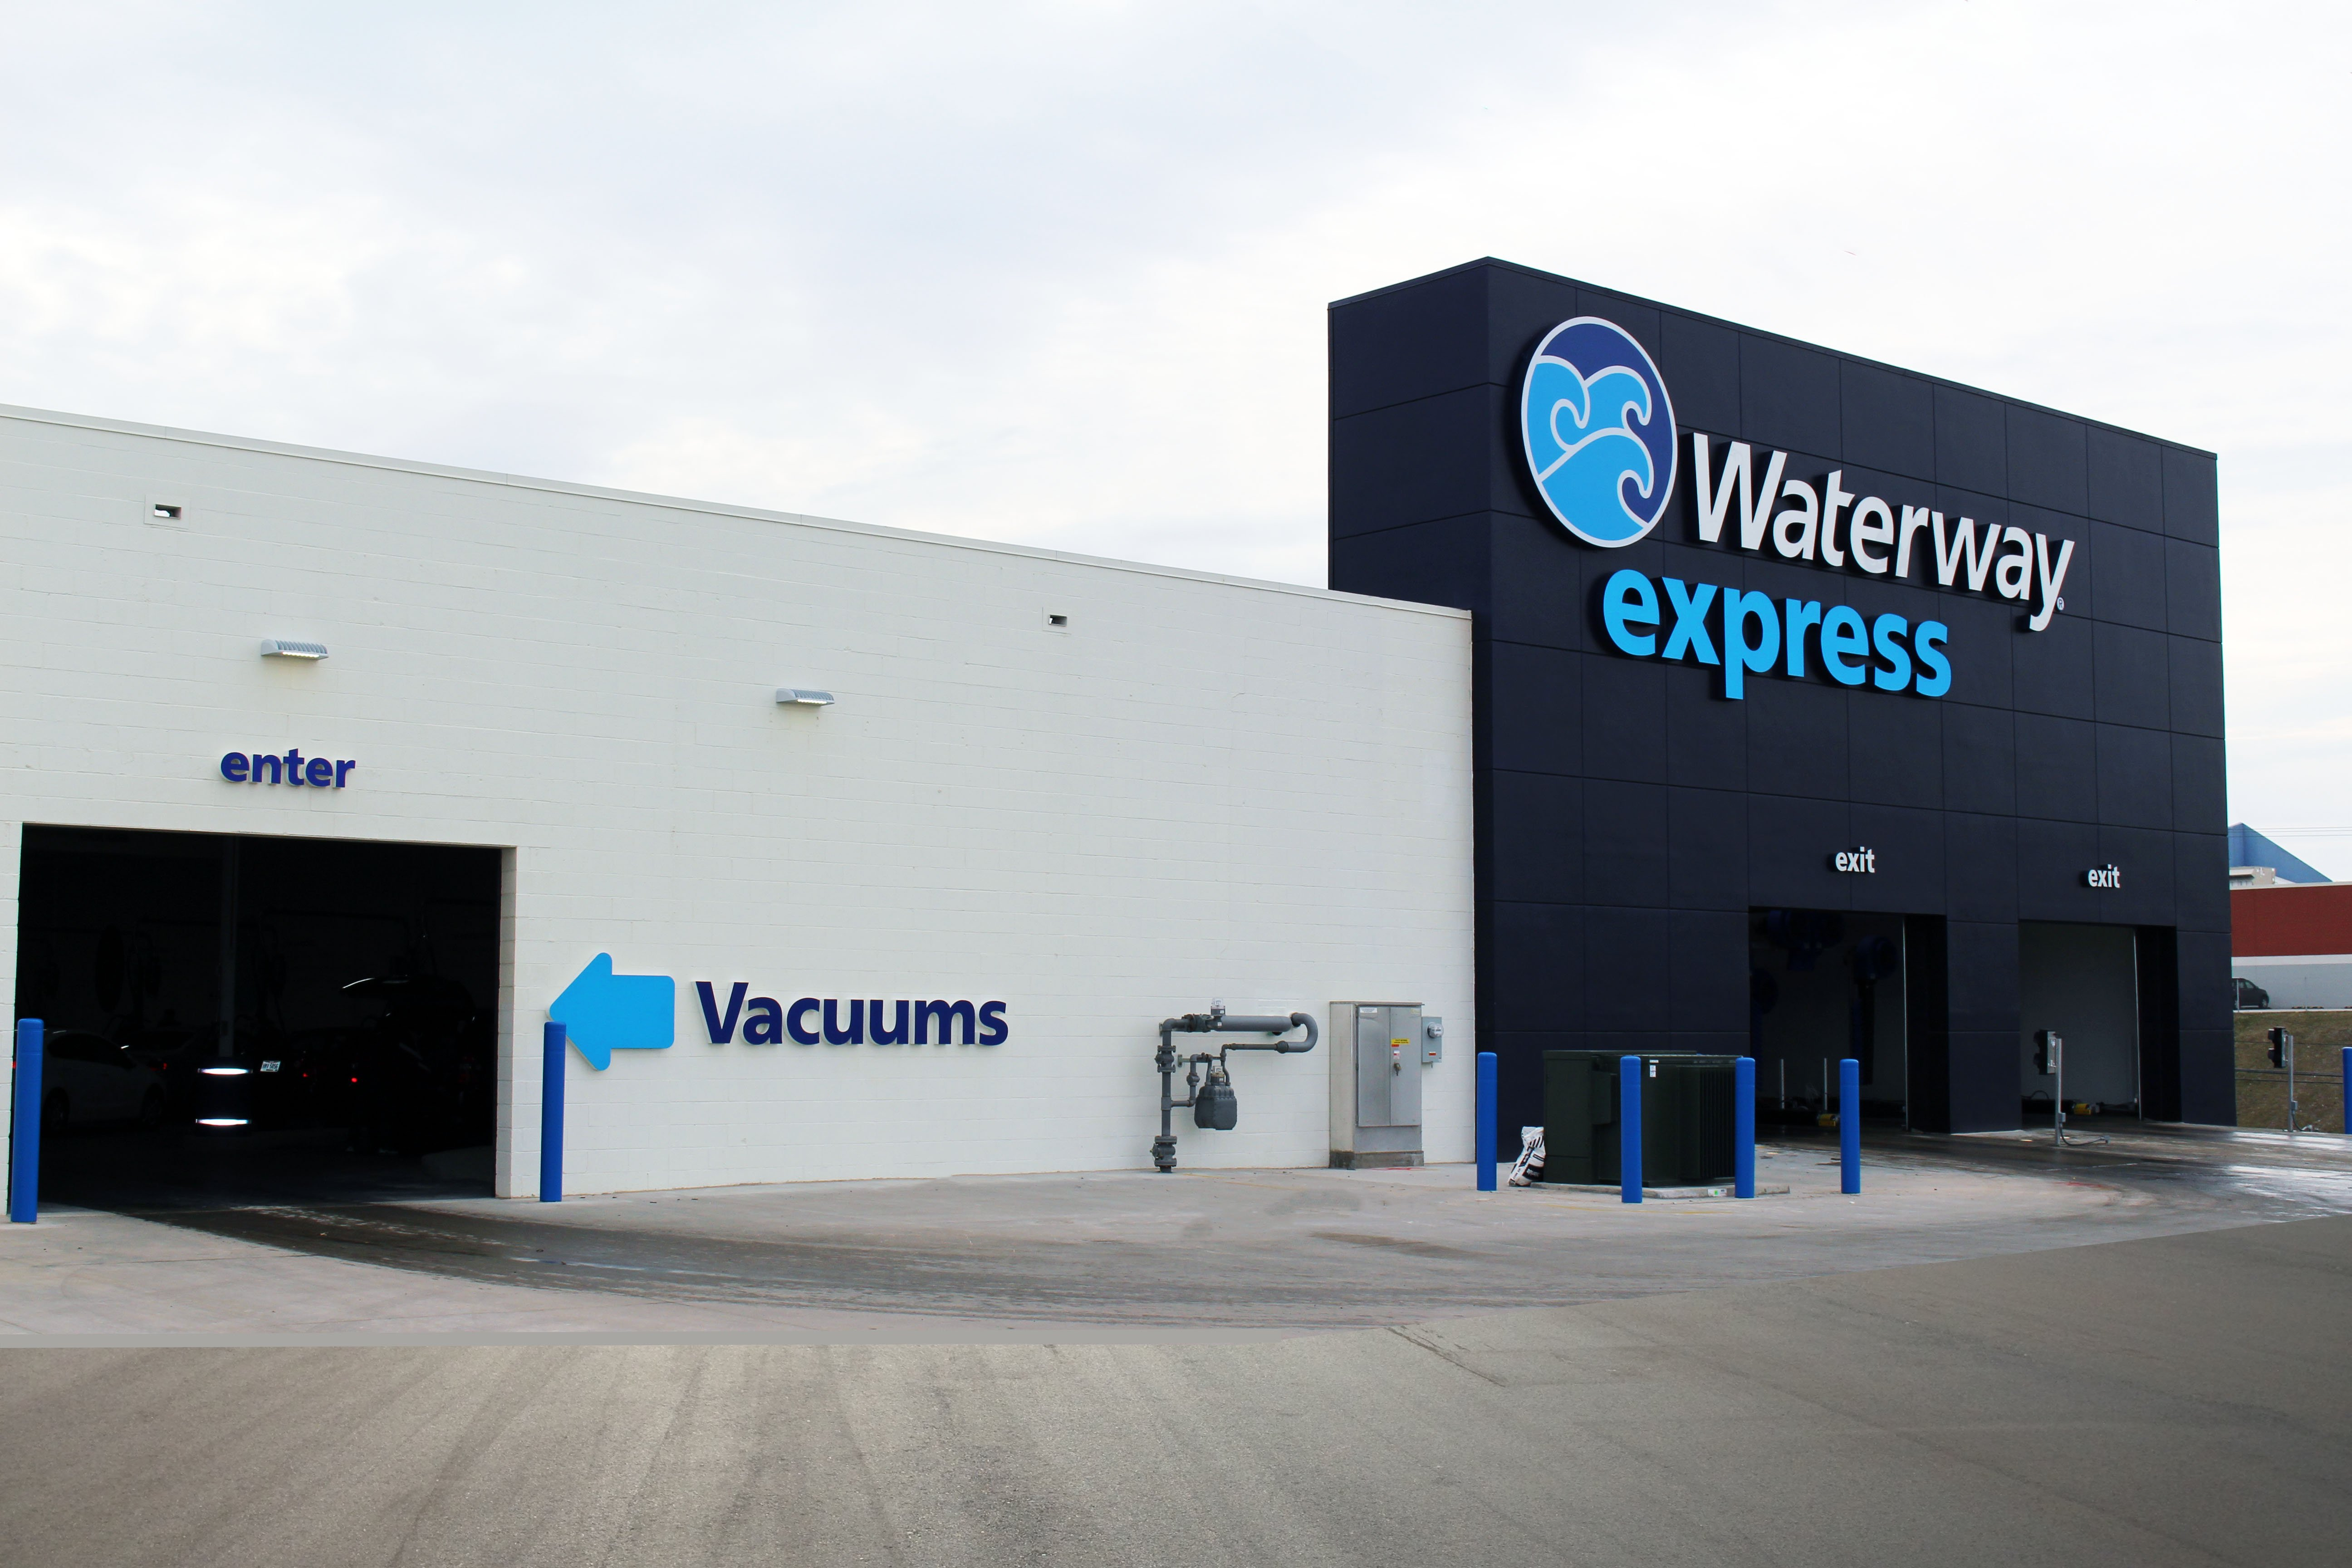 Exterior and interior photos of the Waterway Express in Cleveland, OH